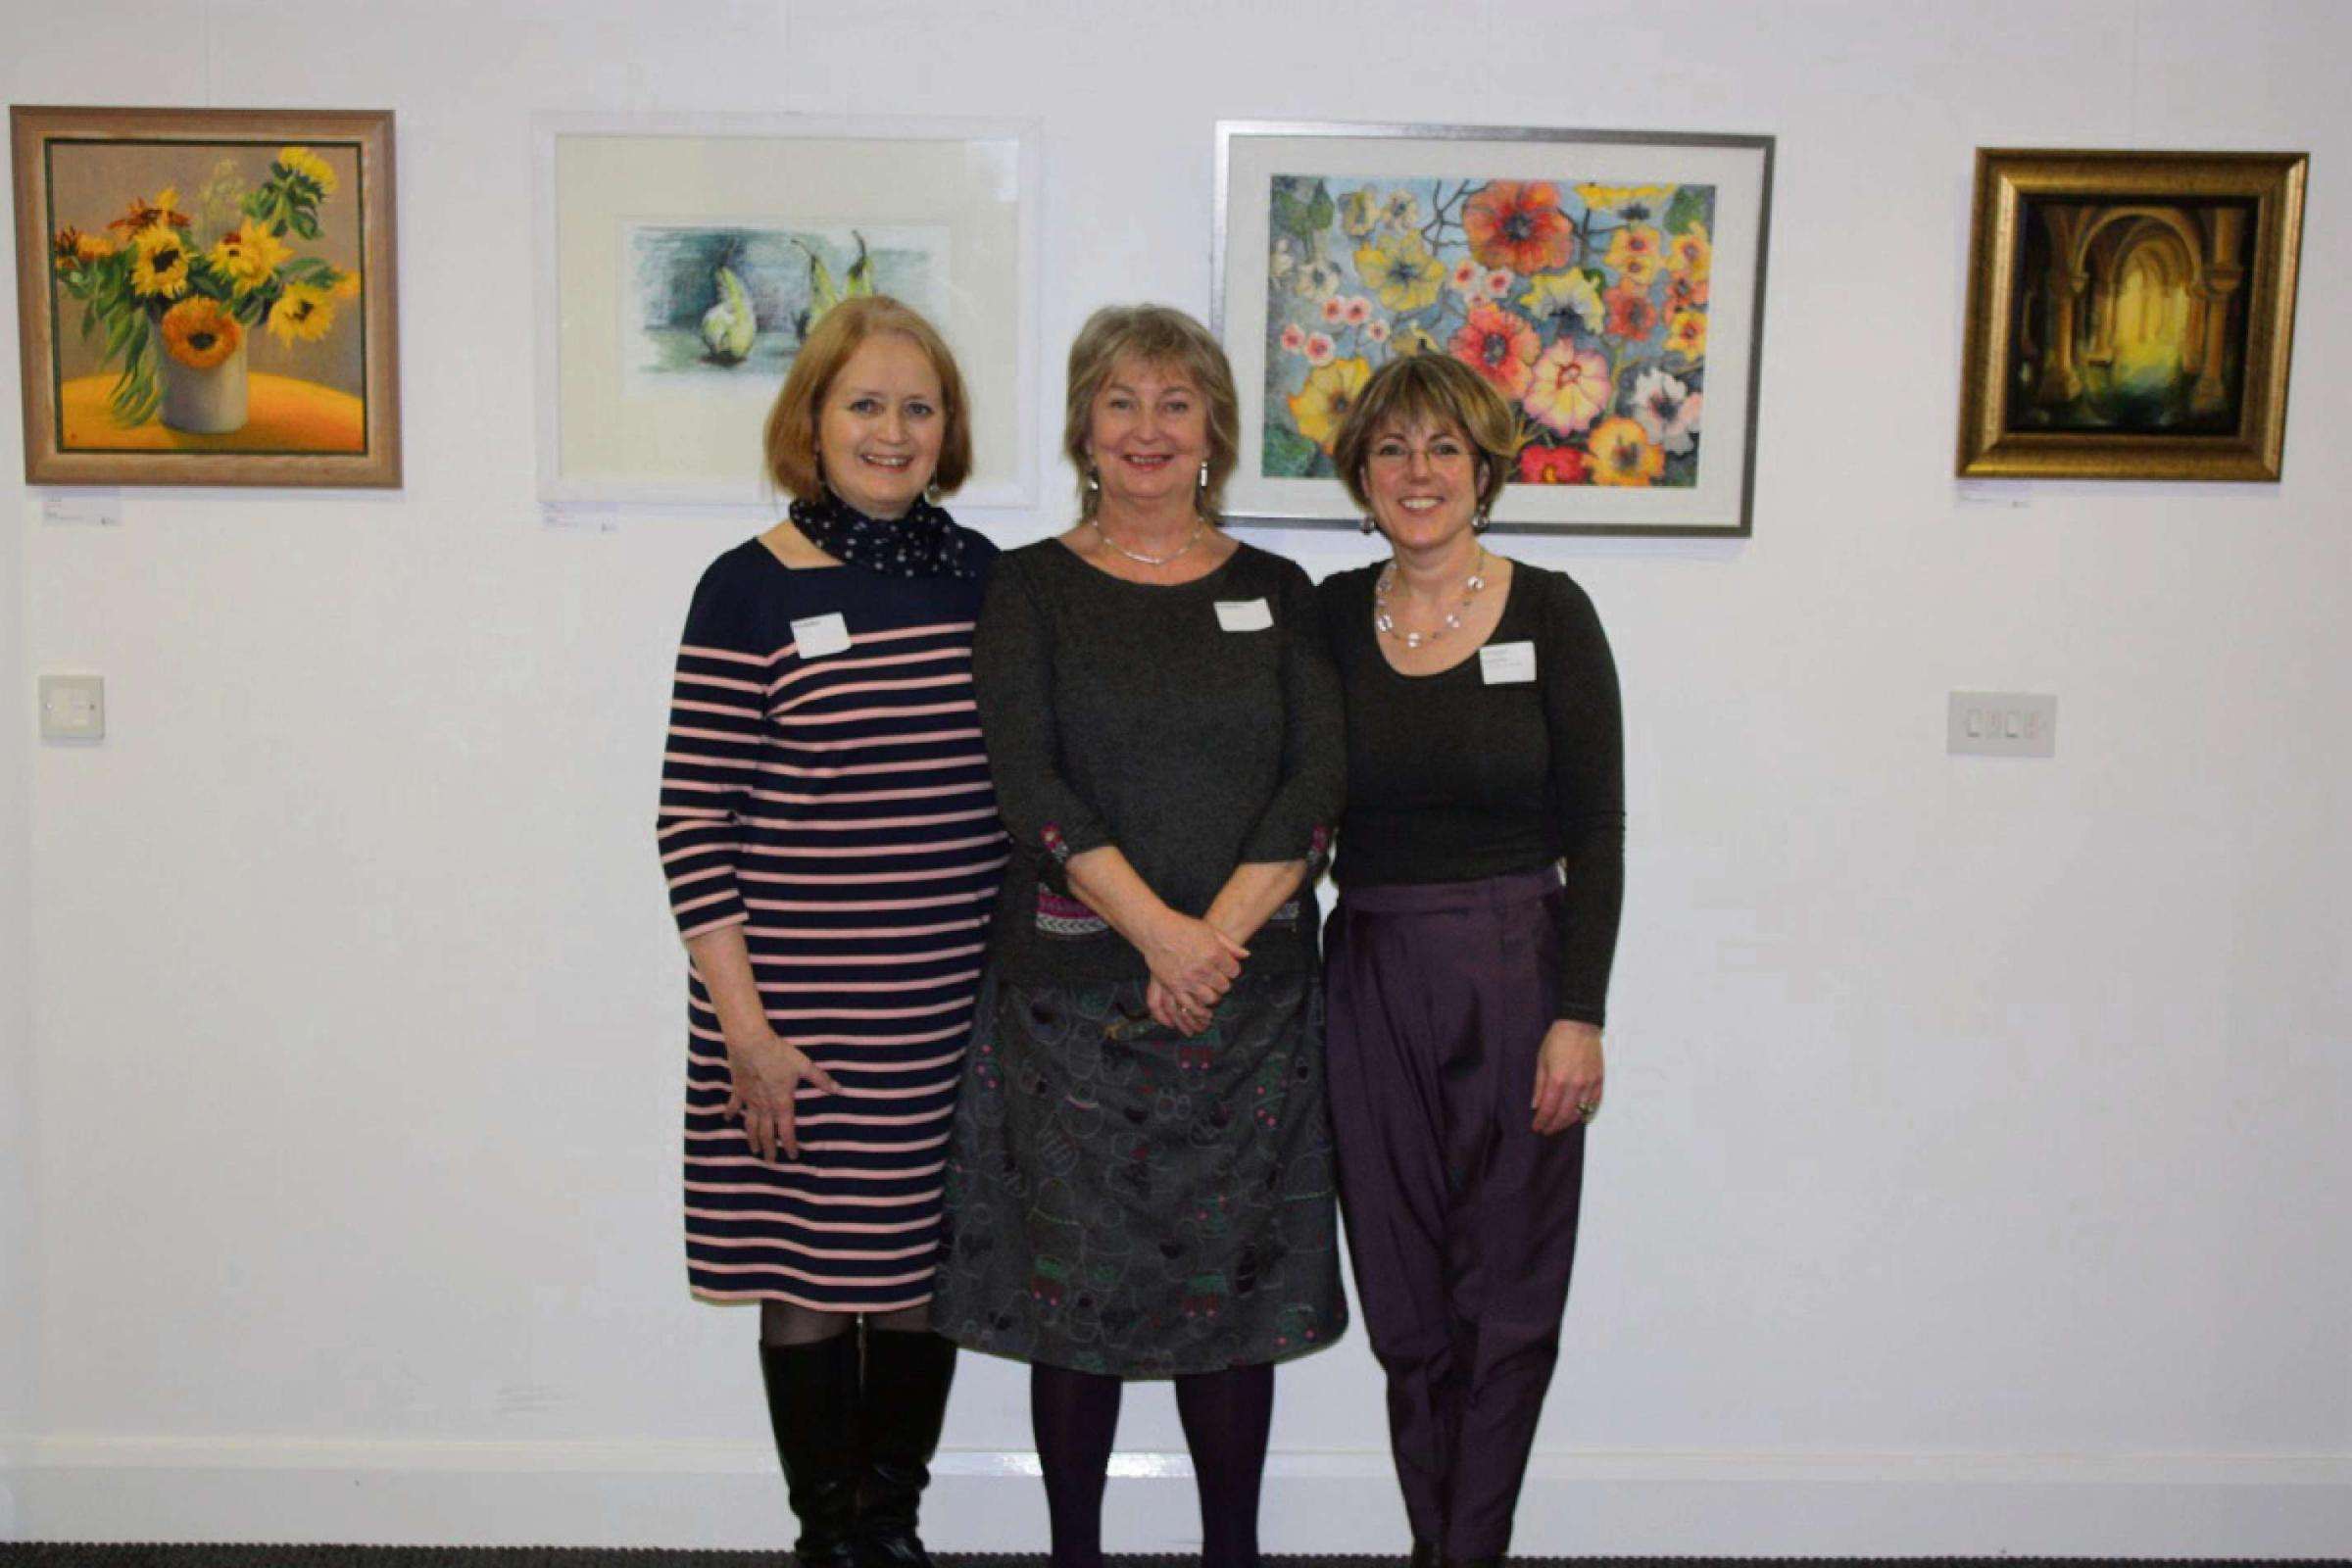 A Picture for Health trustees Nicola Currie and Sally Morgan with founder and trustee Dr Maggie Keeble at the exhibition at the Barbourne Health Centre